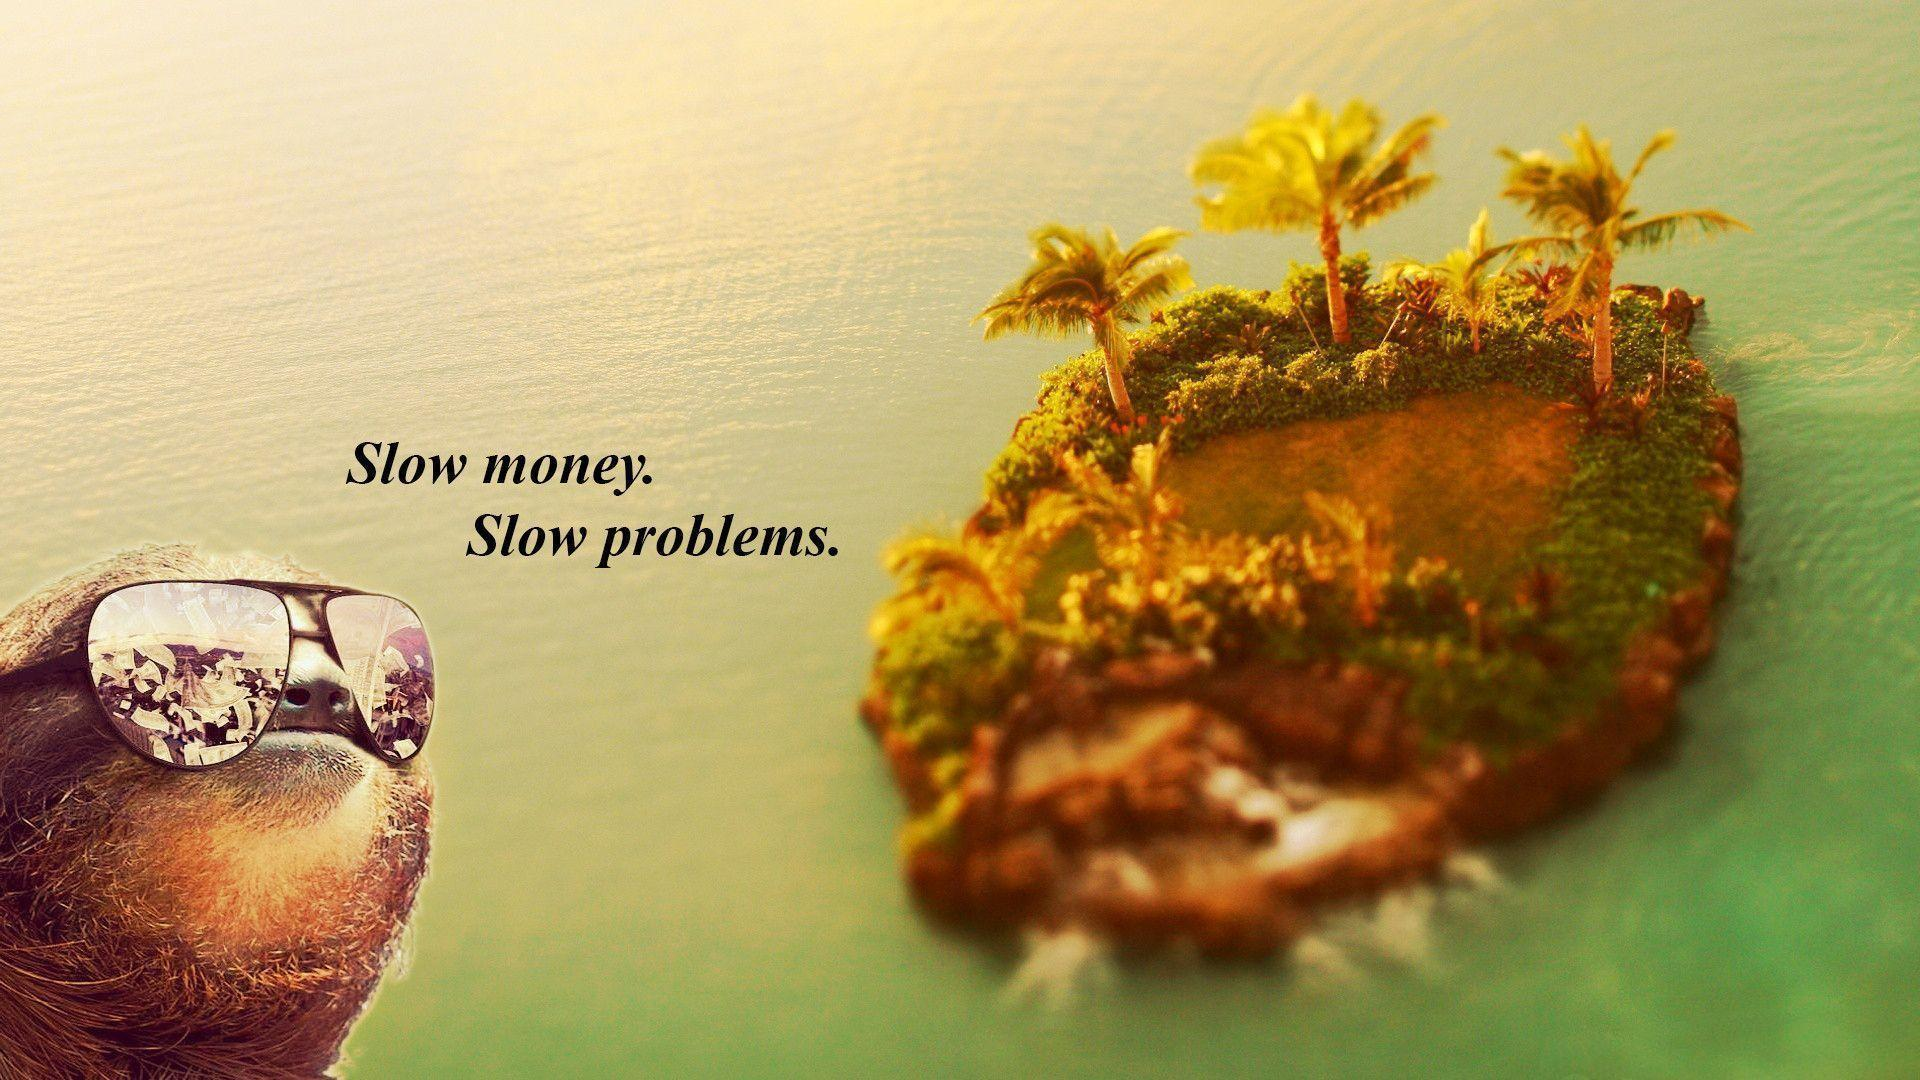 Sloth Slow Island humor text wallpapers